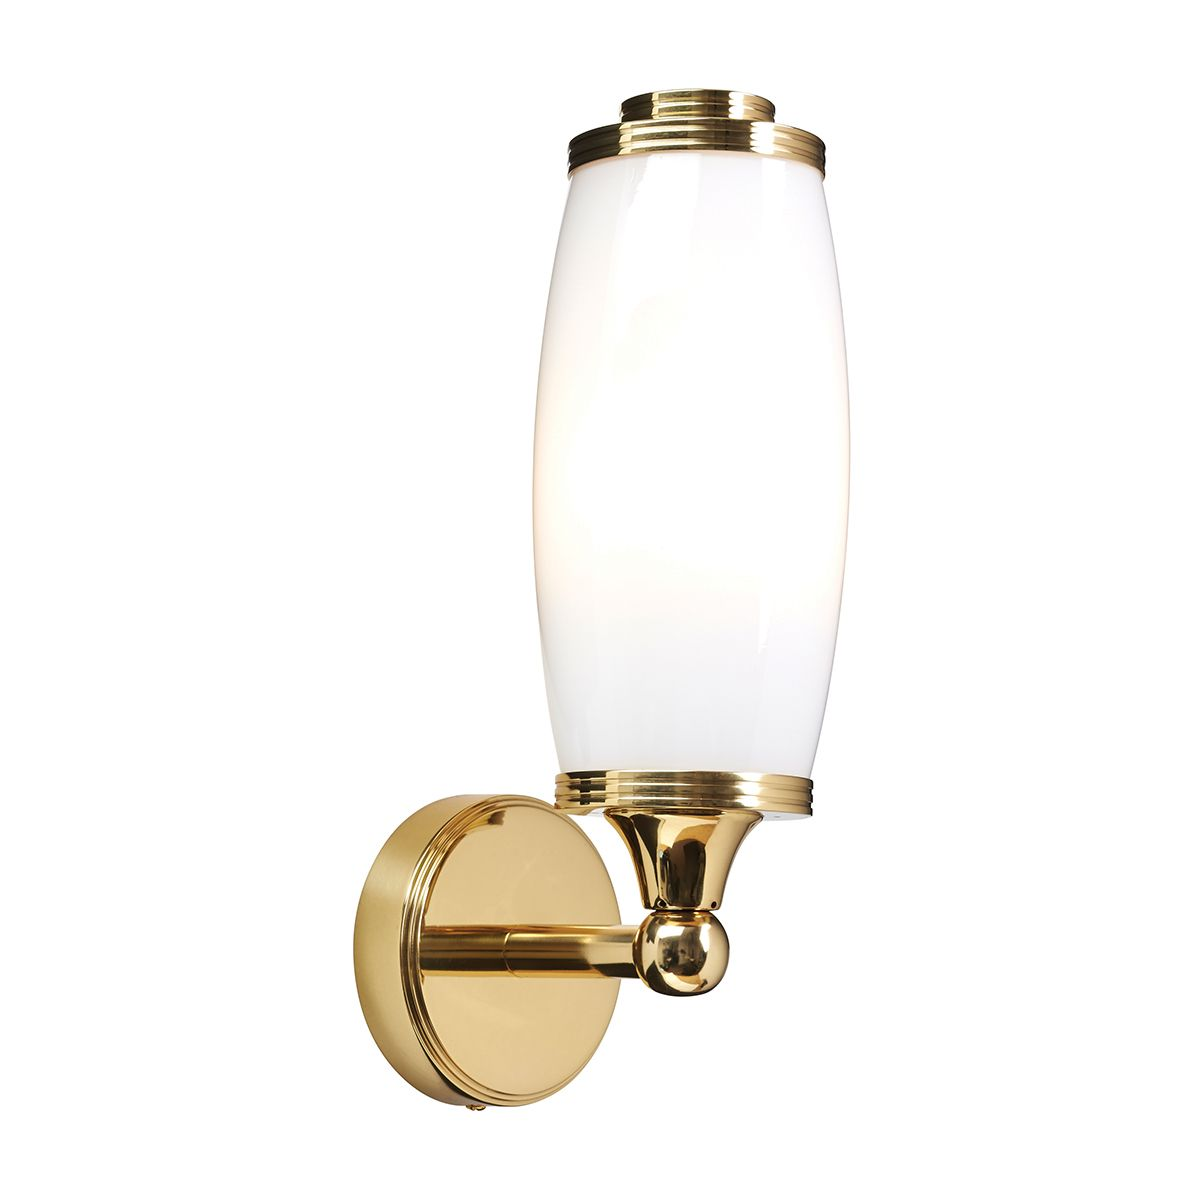 eliot 1 solid brass single bathroom wall light in a